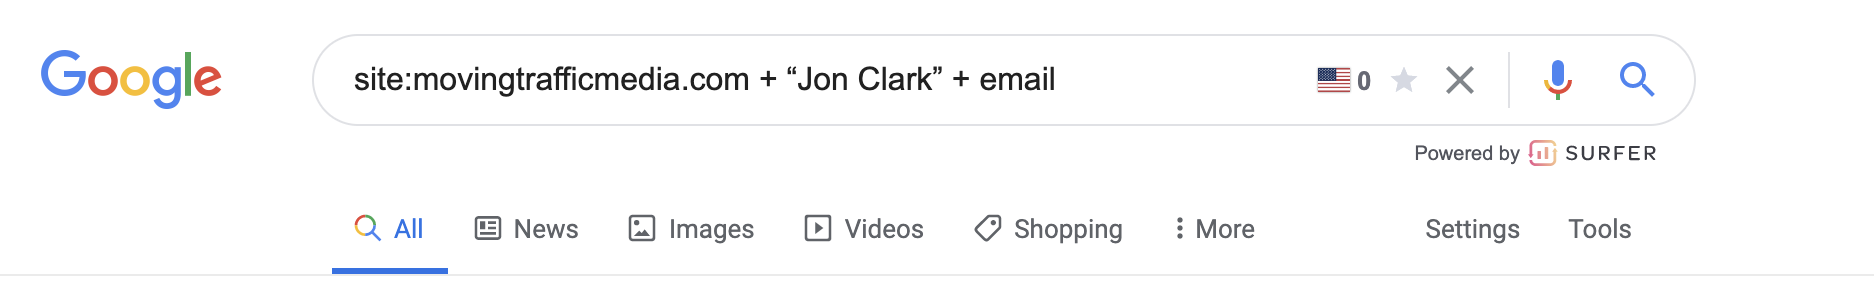 Search Operators Email